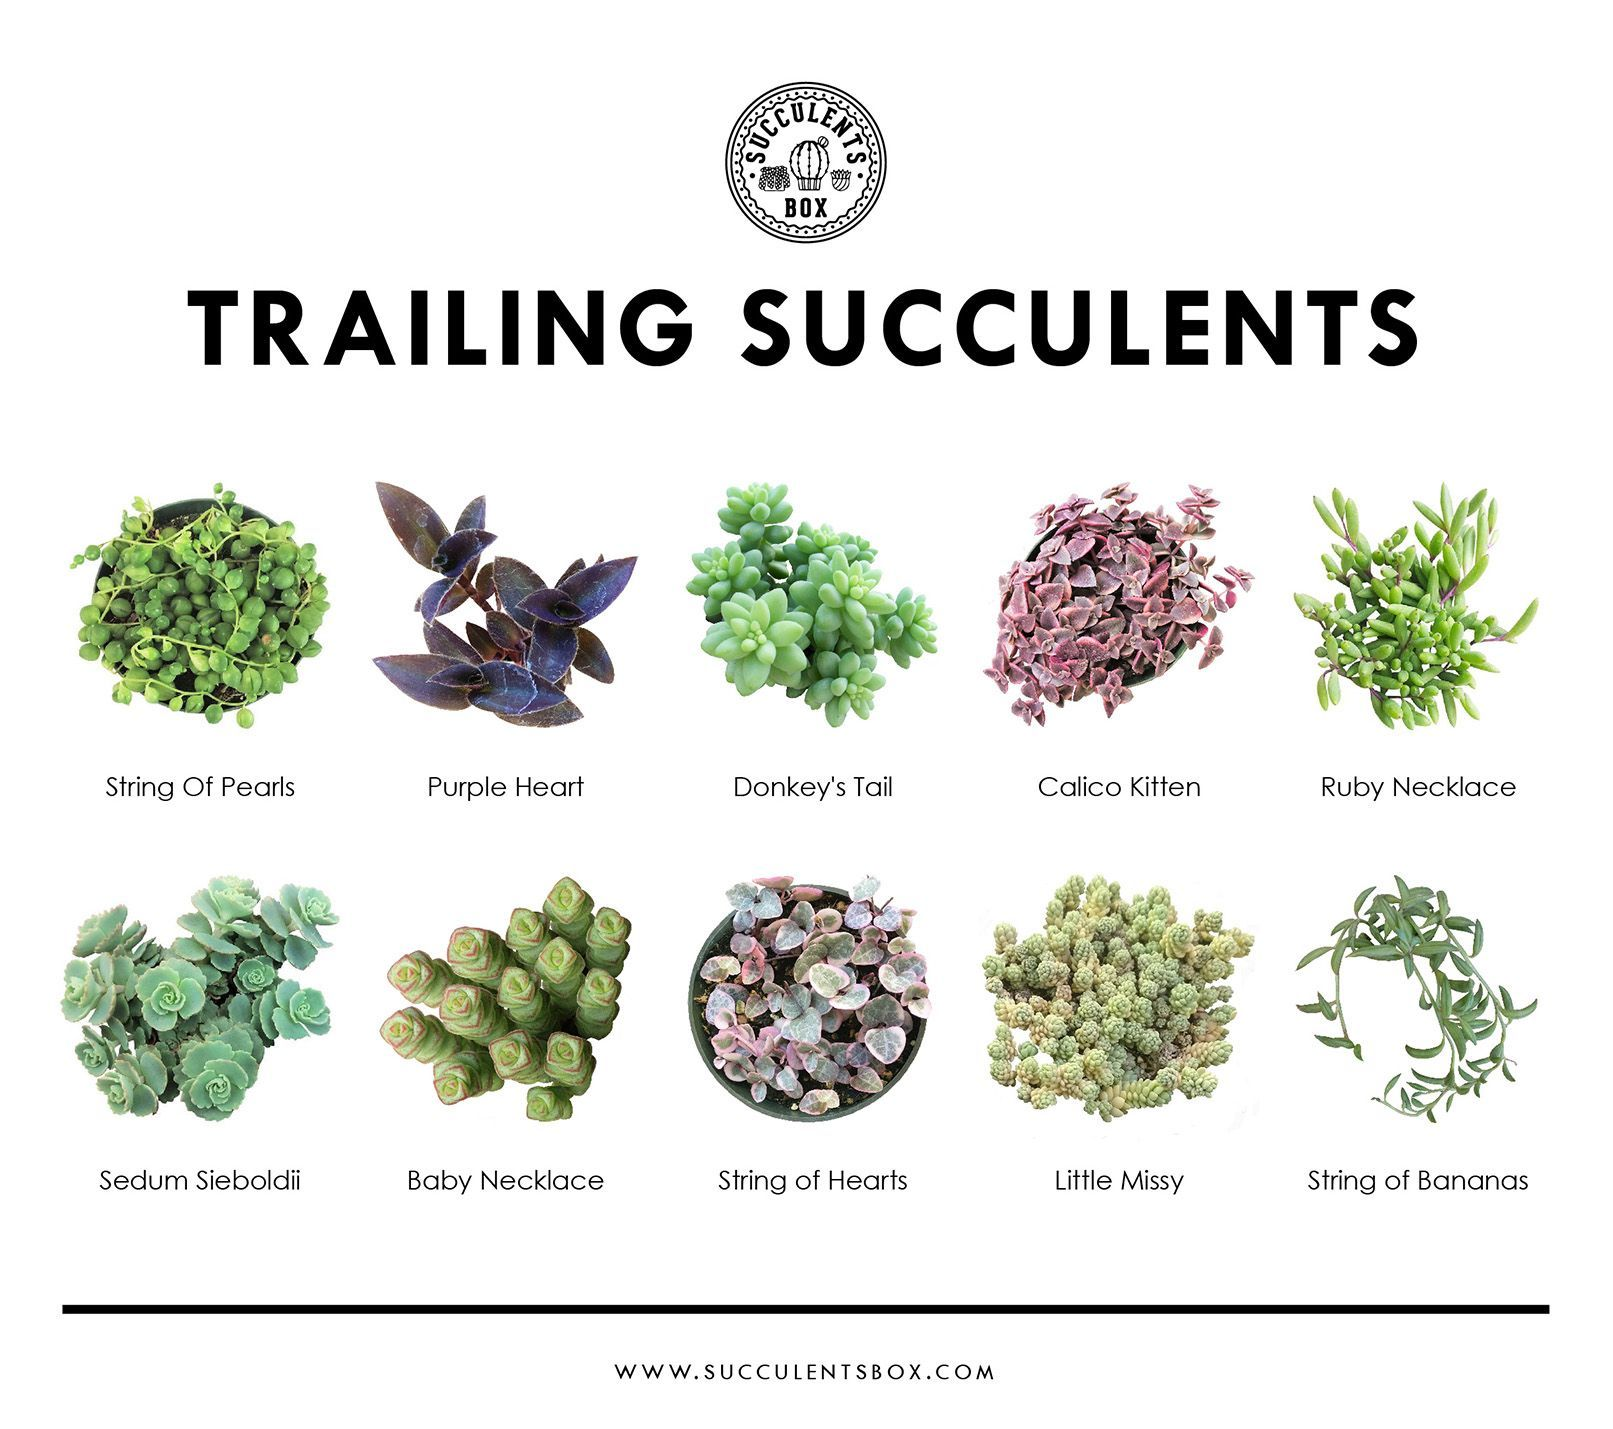 Trailing Succulents Have A Cascading Growth Habit It Is Best To Grow Them In Hanging Baskets To Show Off Their Draping Na Hanging Succulents Succulents Plants